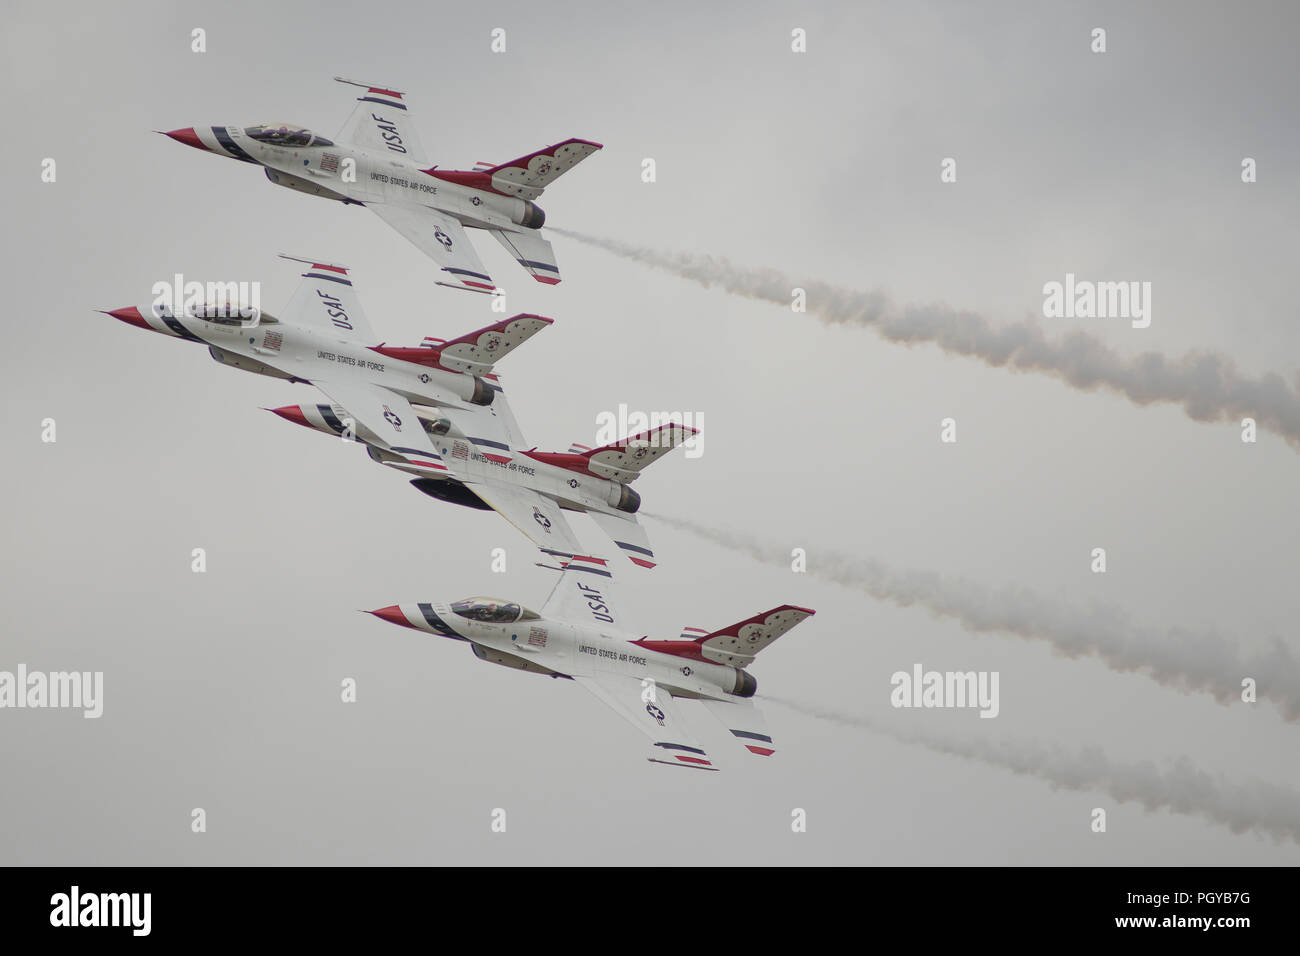 The Thunderbirds USAF aerobatic display team flying at RAF Fairford, RIAT 2017, in the UK - Stock Image